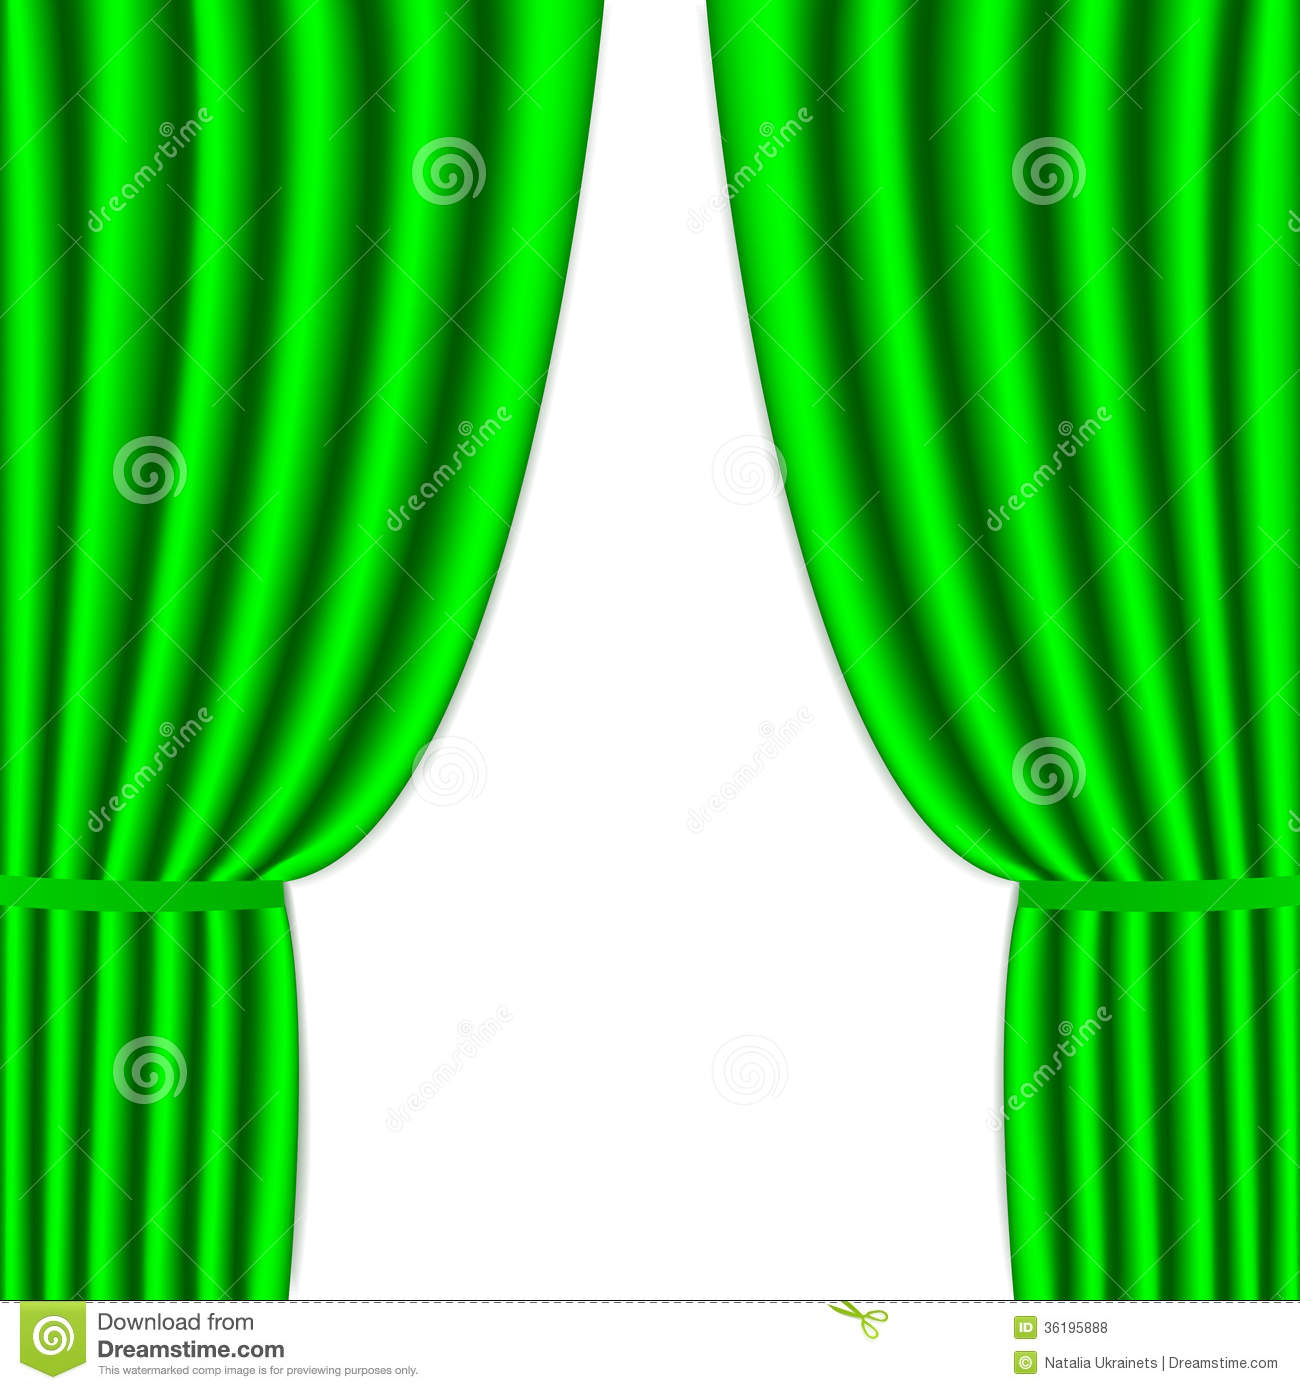 Clipart green curtains.